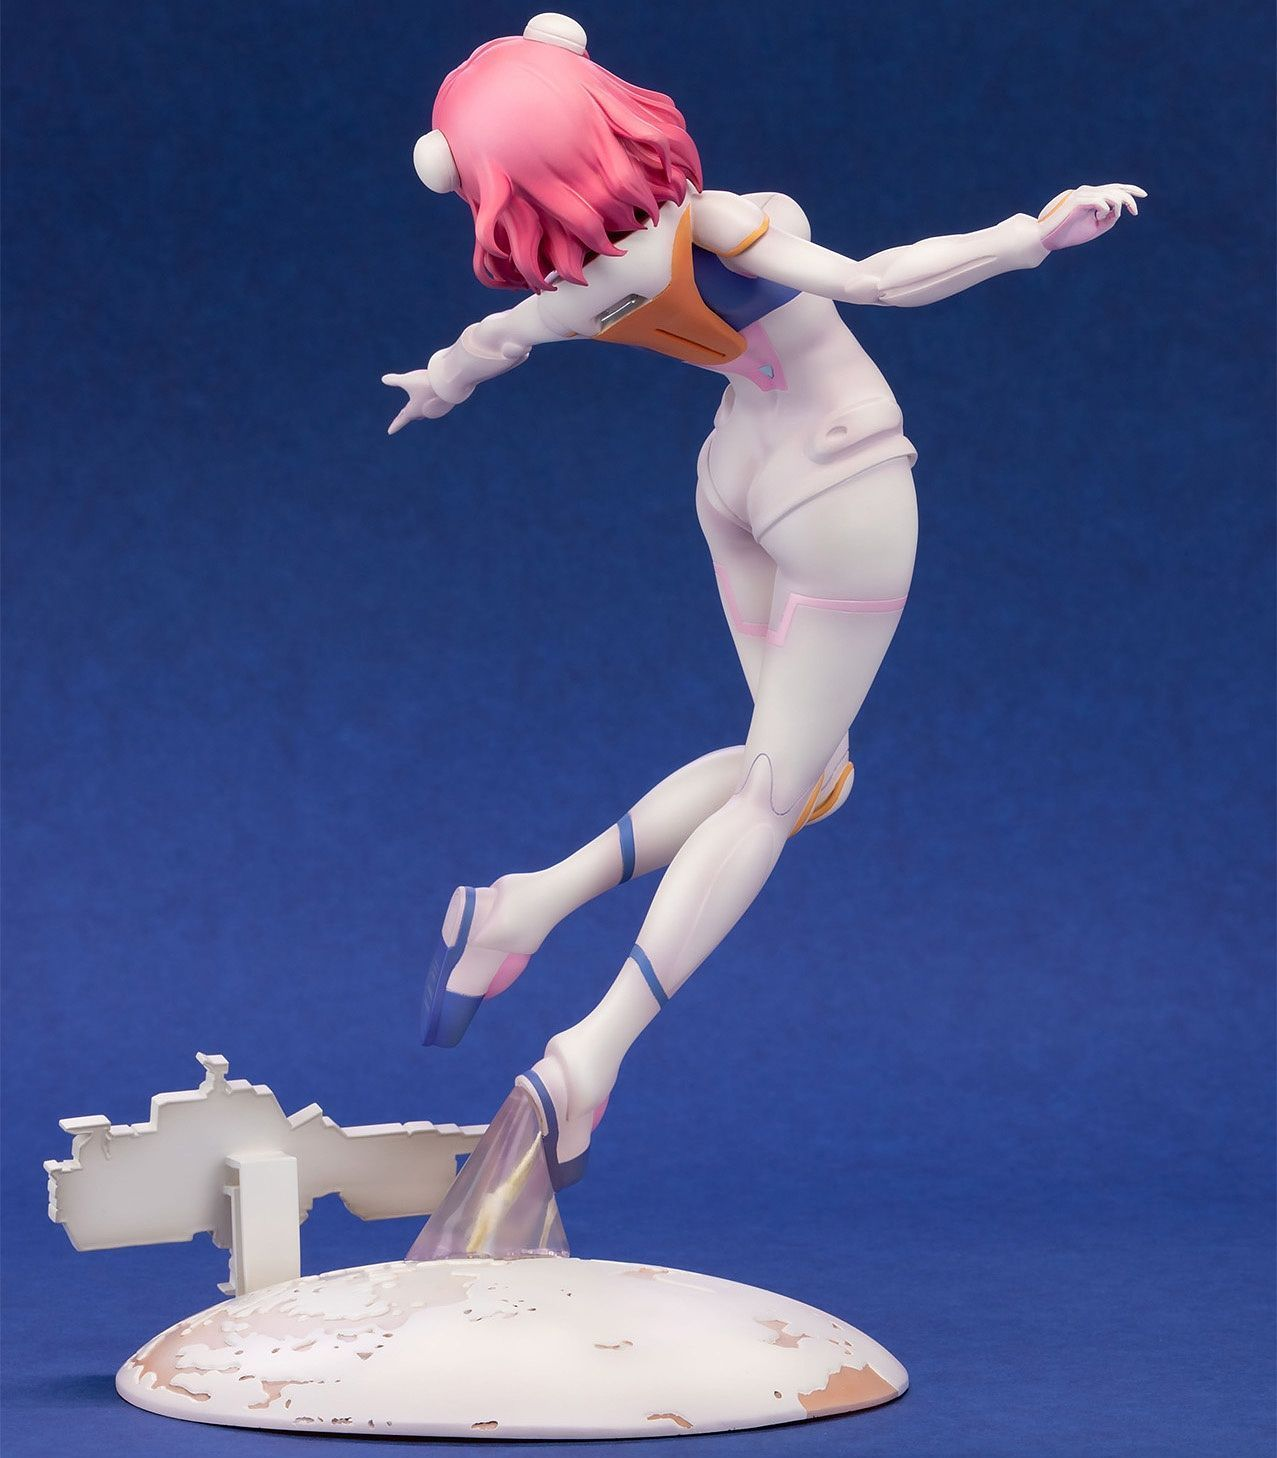 Astra Lost in Space: 1/7 Aries Spring - PVC Figure image